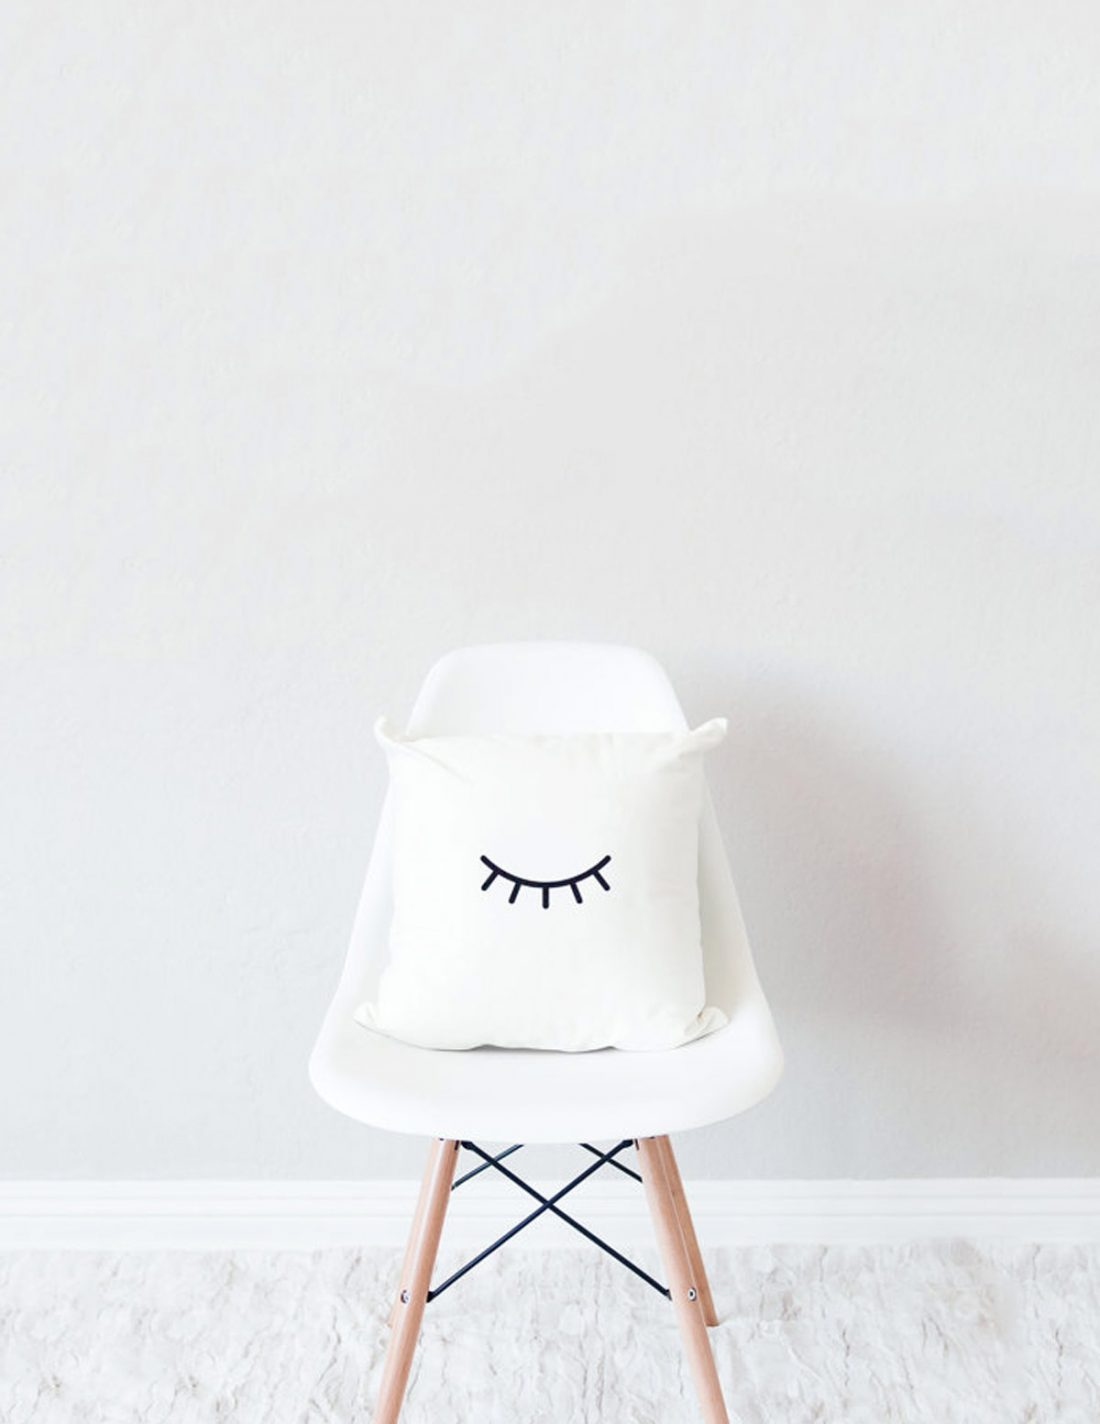 16 minimalist home decor items under 50 foreign rooftops